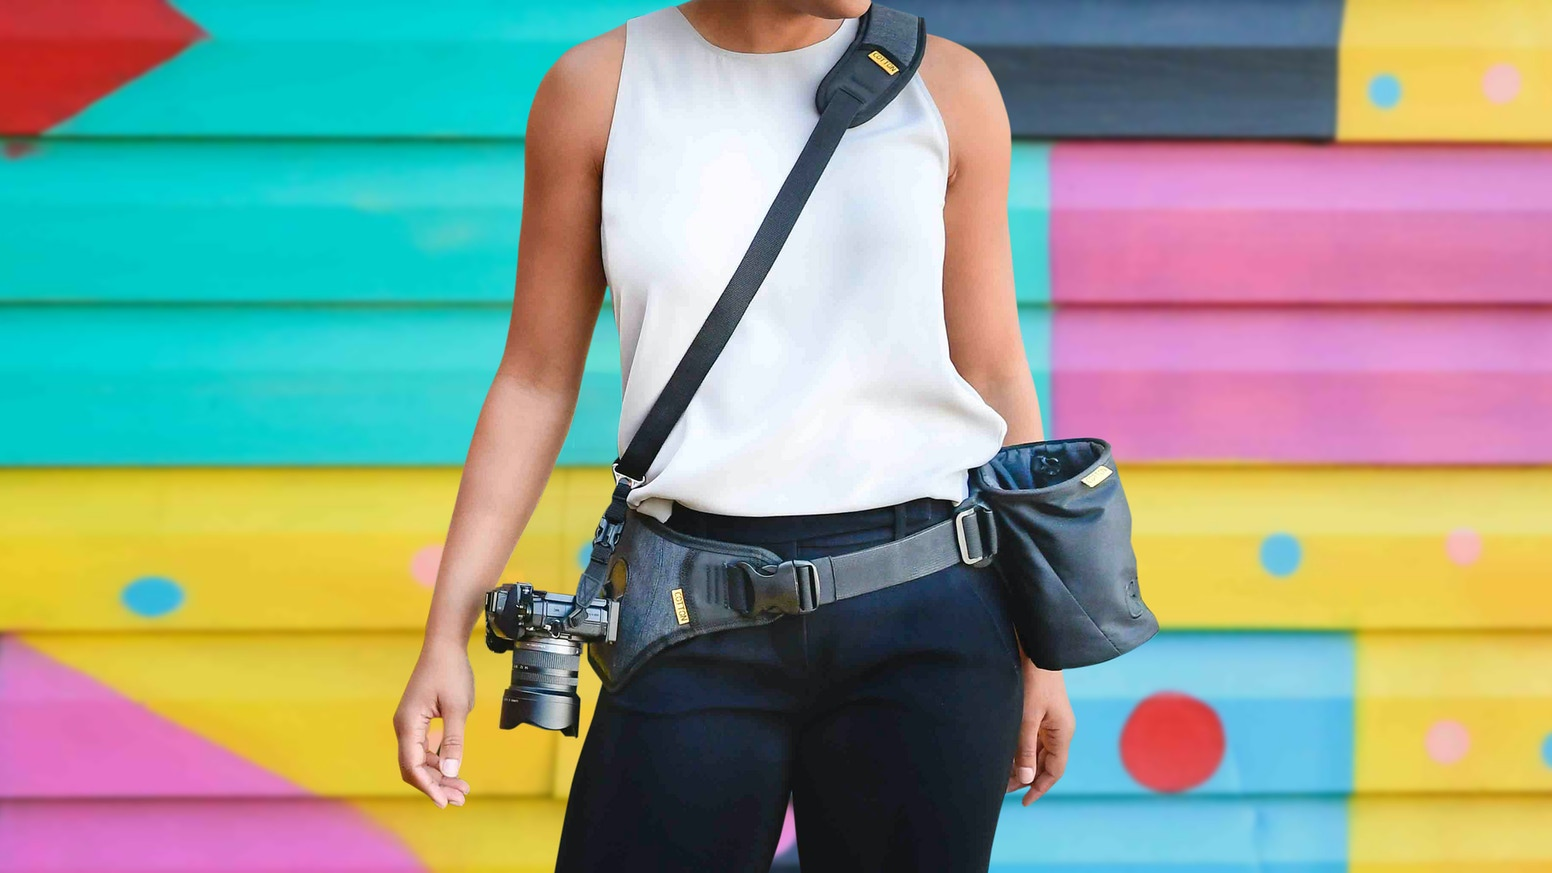 The Cotton Carrier SlingBelt and Lens Bucket for carrying your camera and some extra gear.